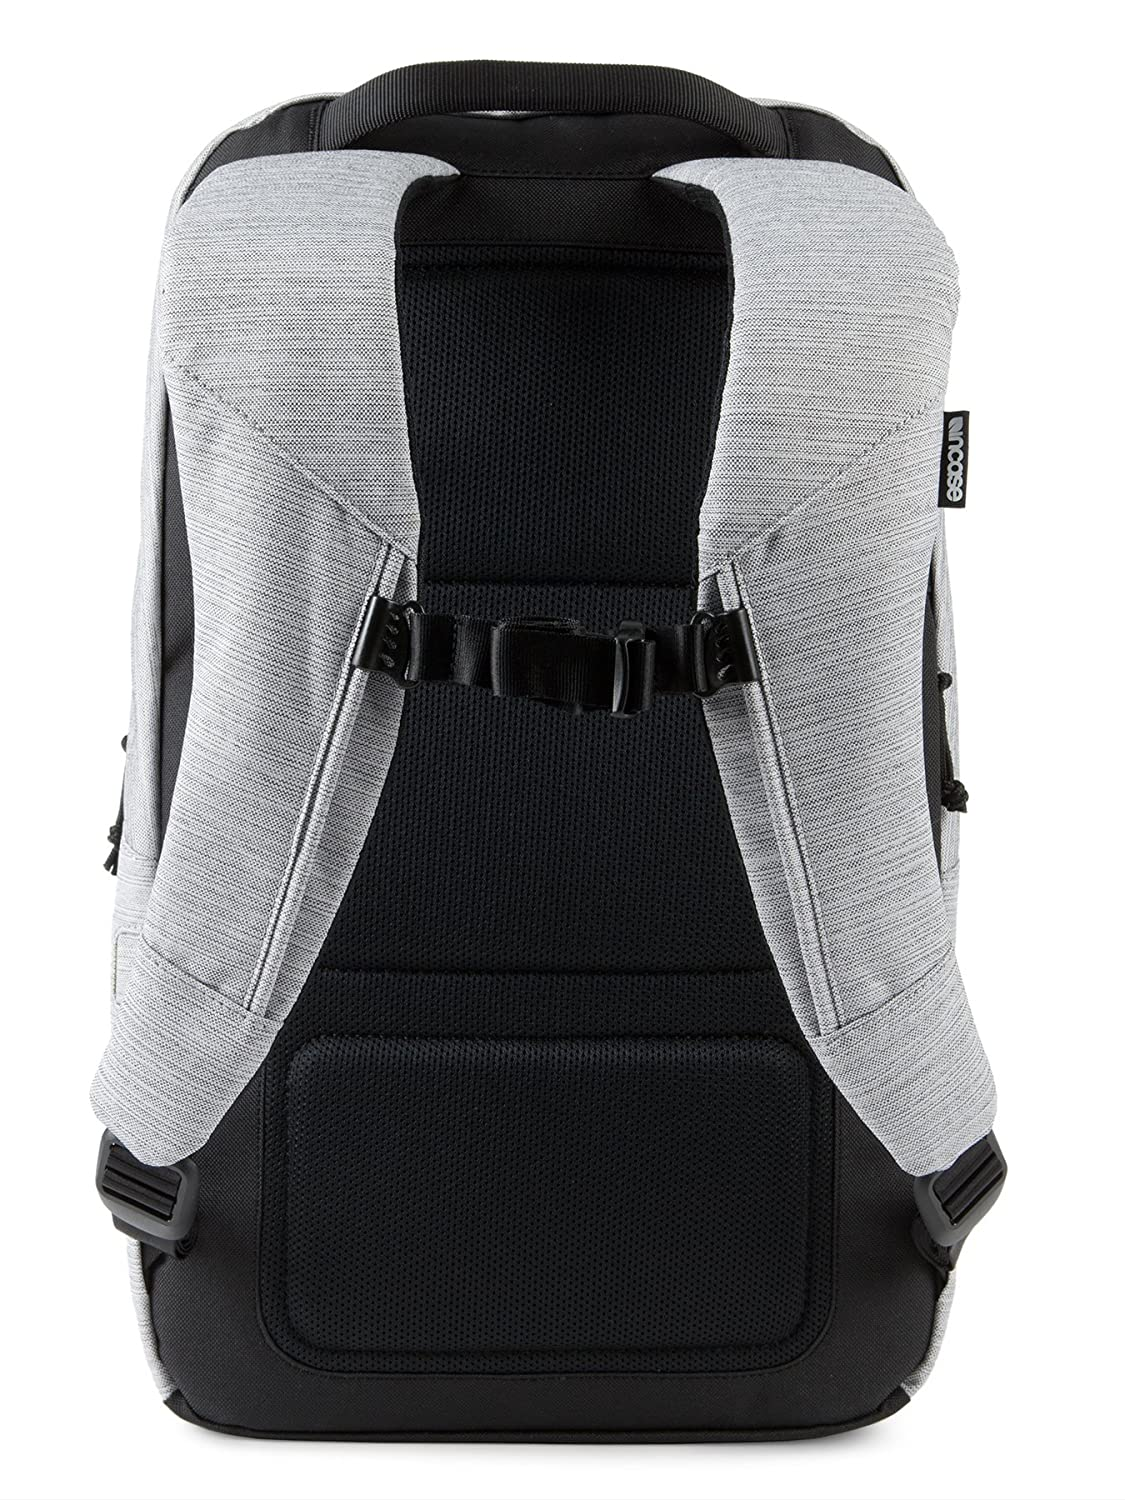 Incase 15.6 Laptop Cargo Backpack, Heather Lunar Rock Black